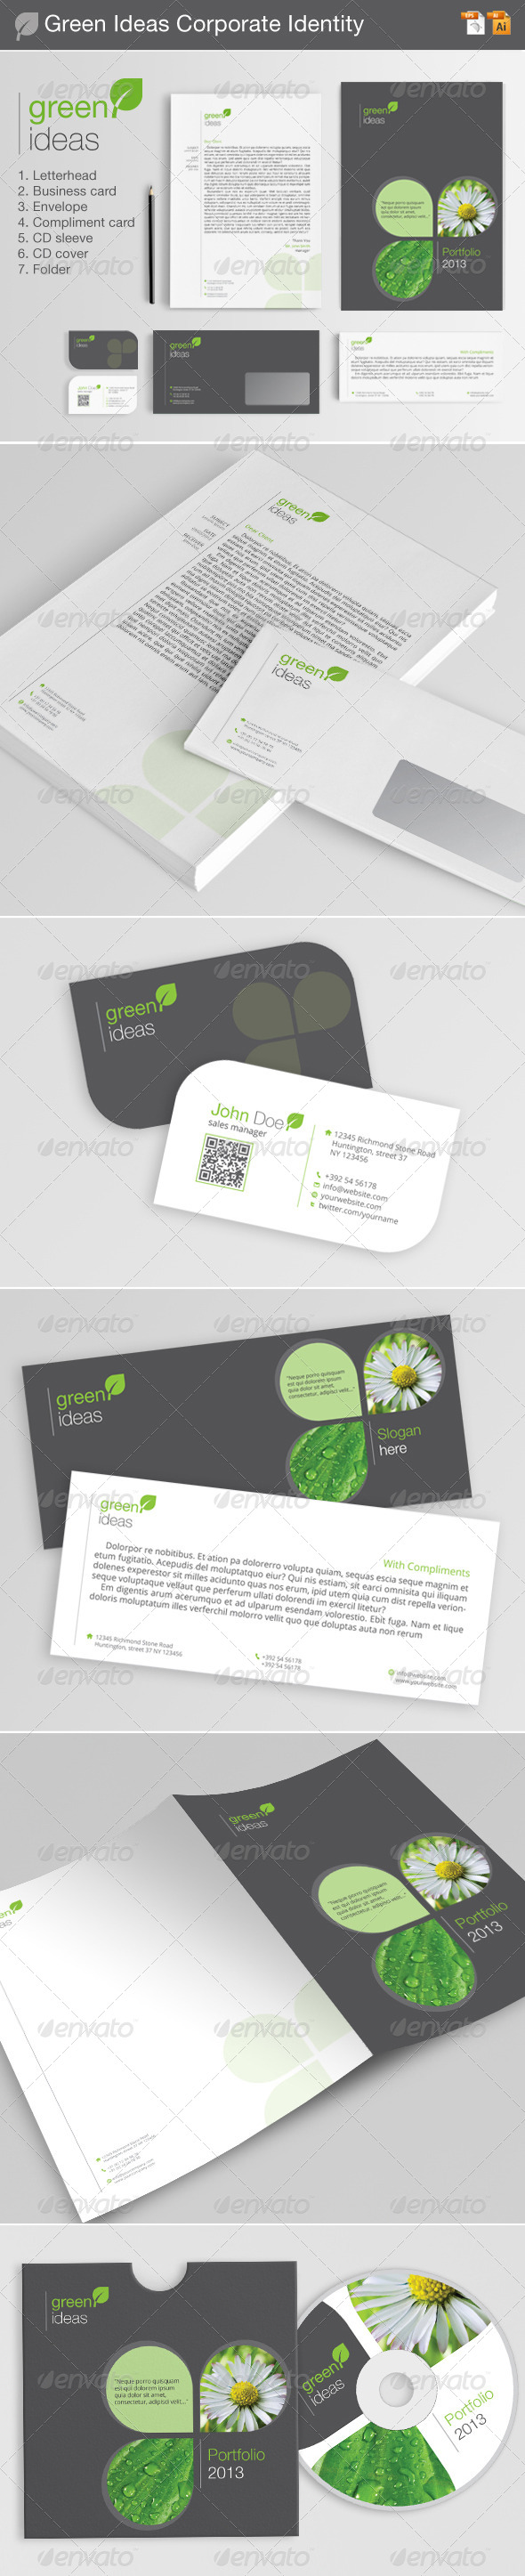 GraphicRiver Green Ideas Corporate Identity 4433562